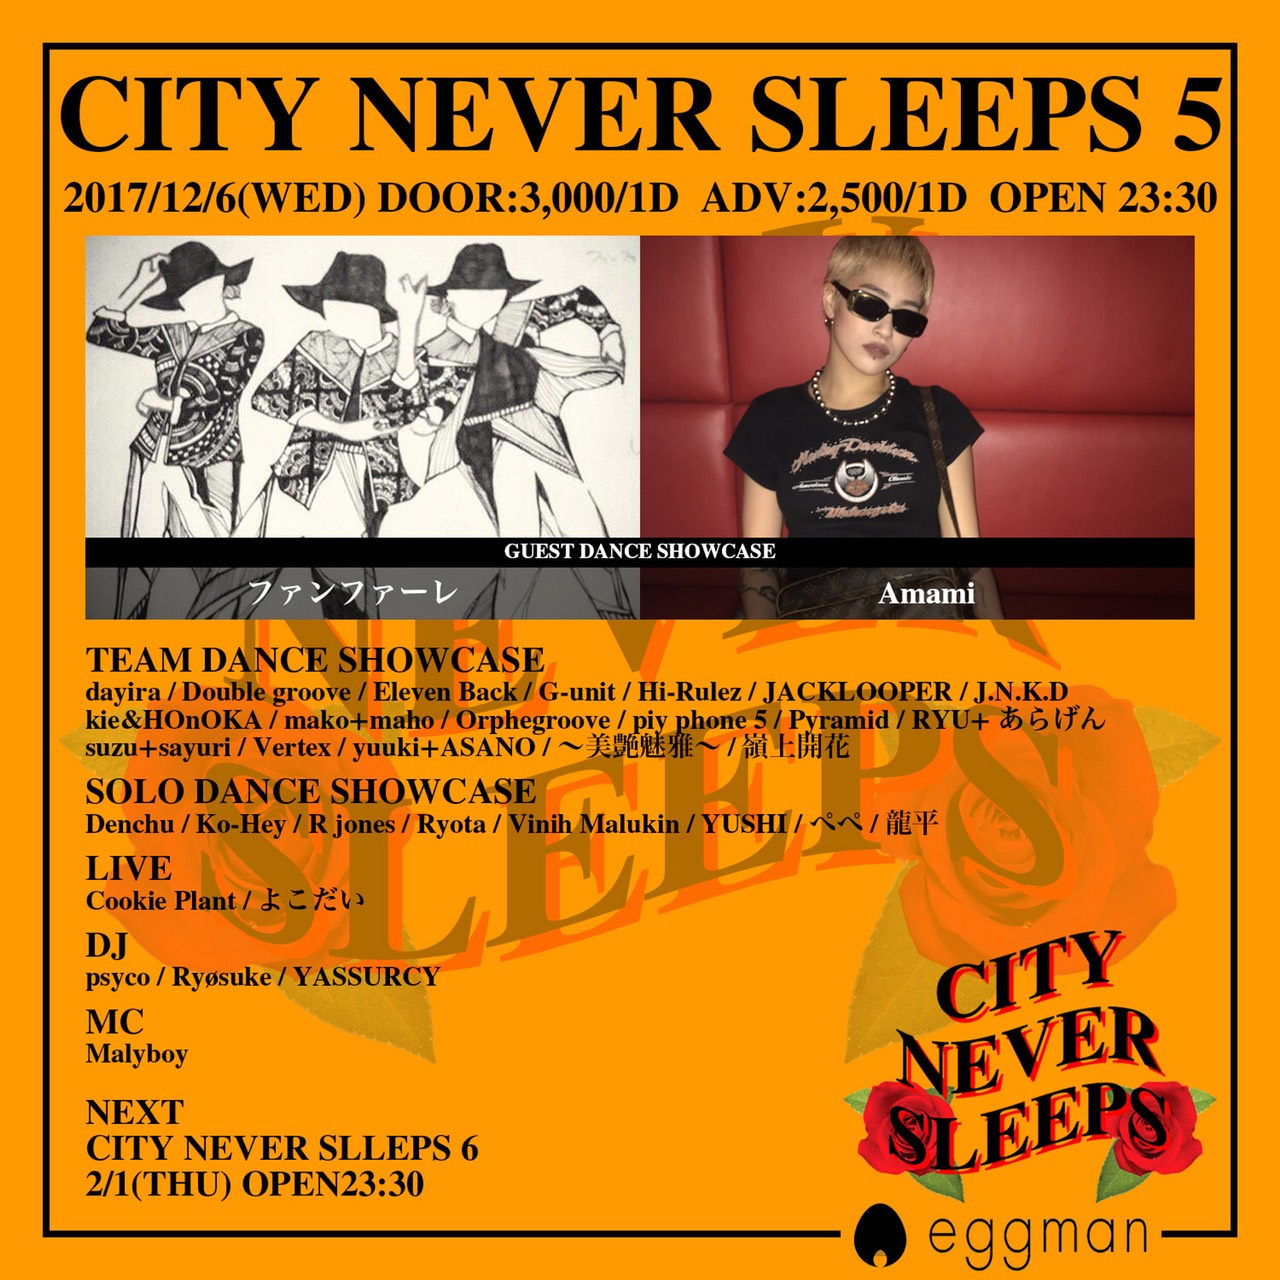 CITY NEVER SLEEPS 5